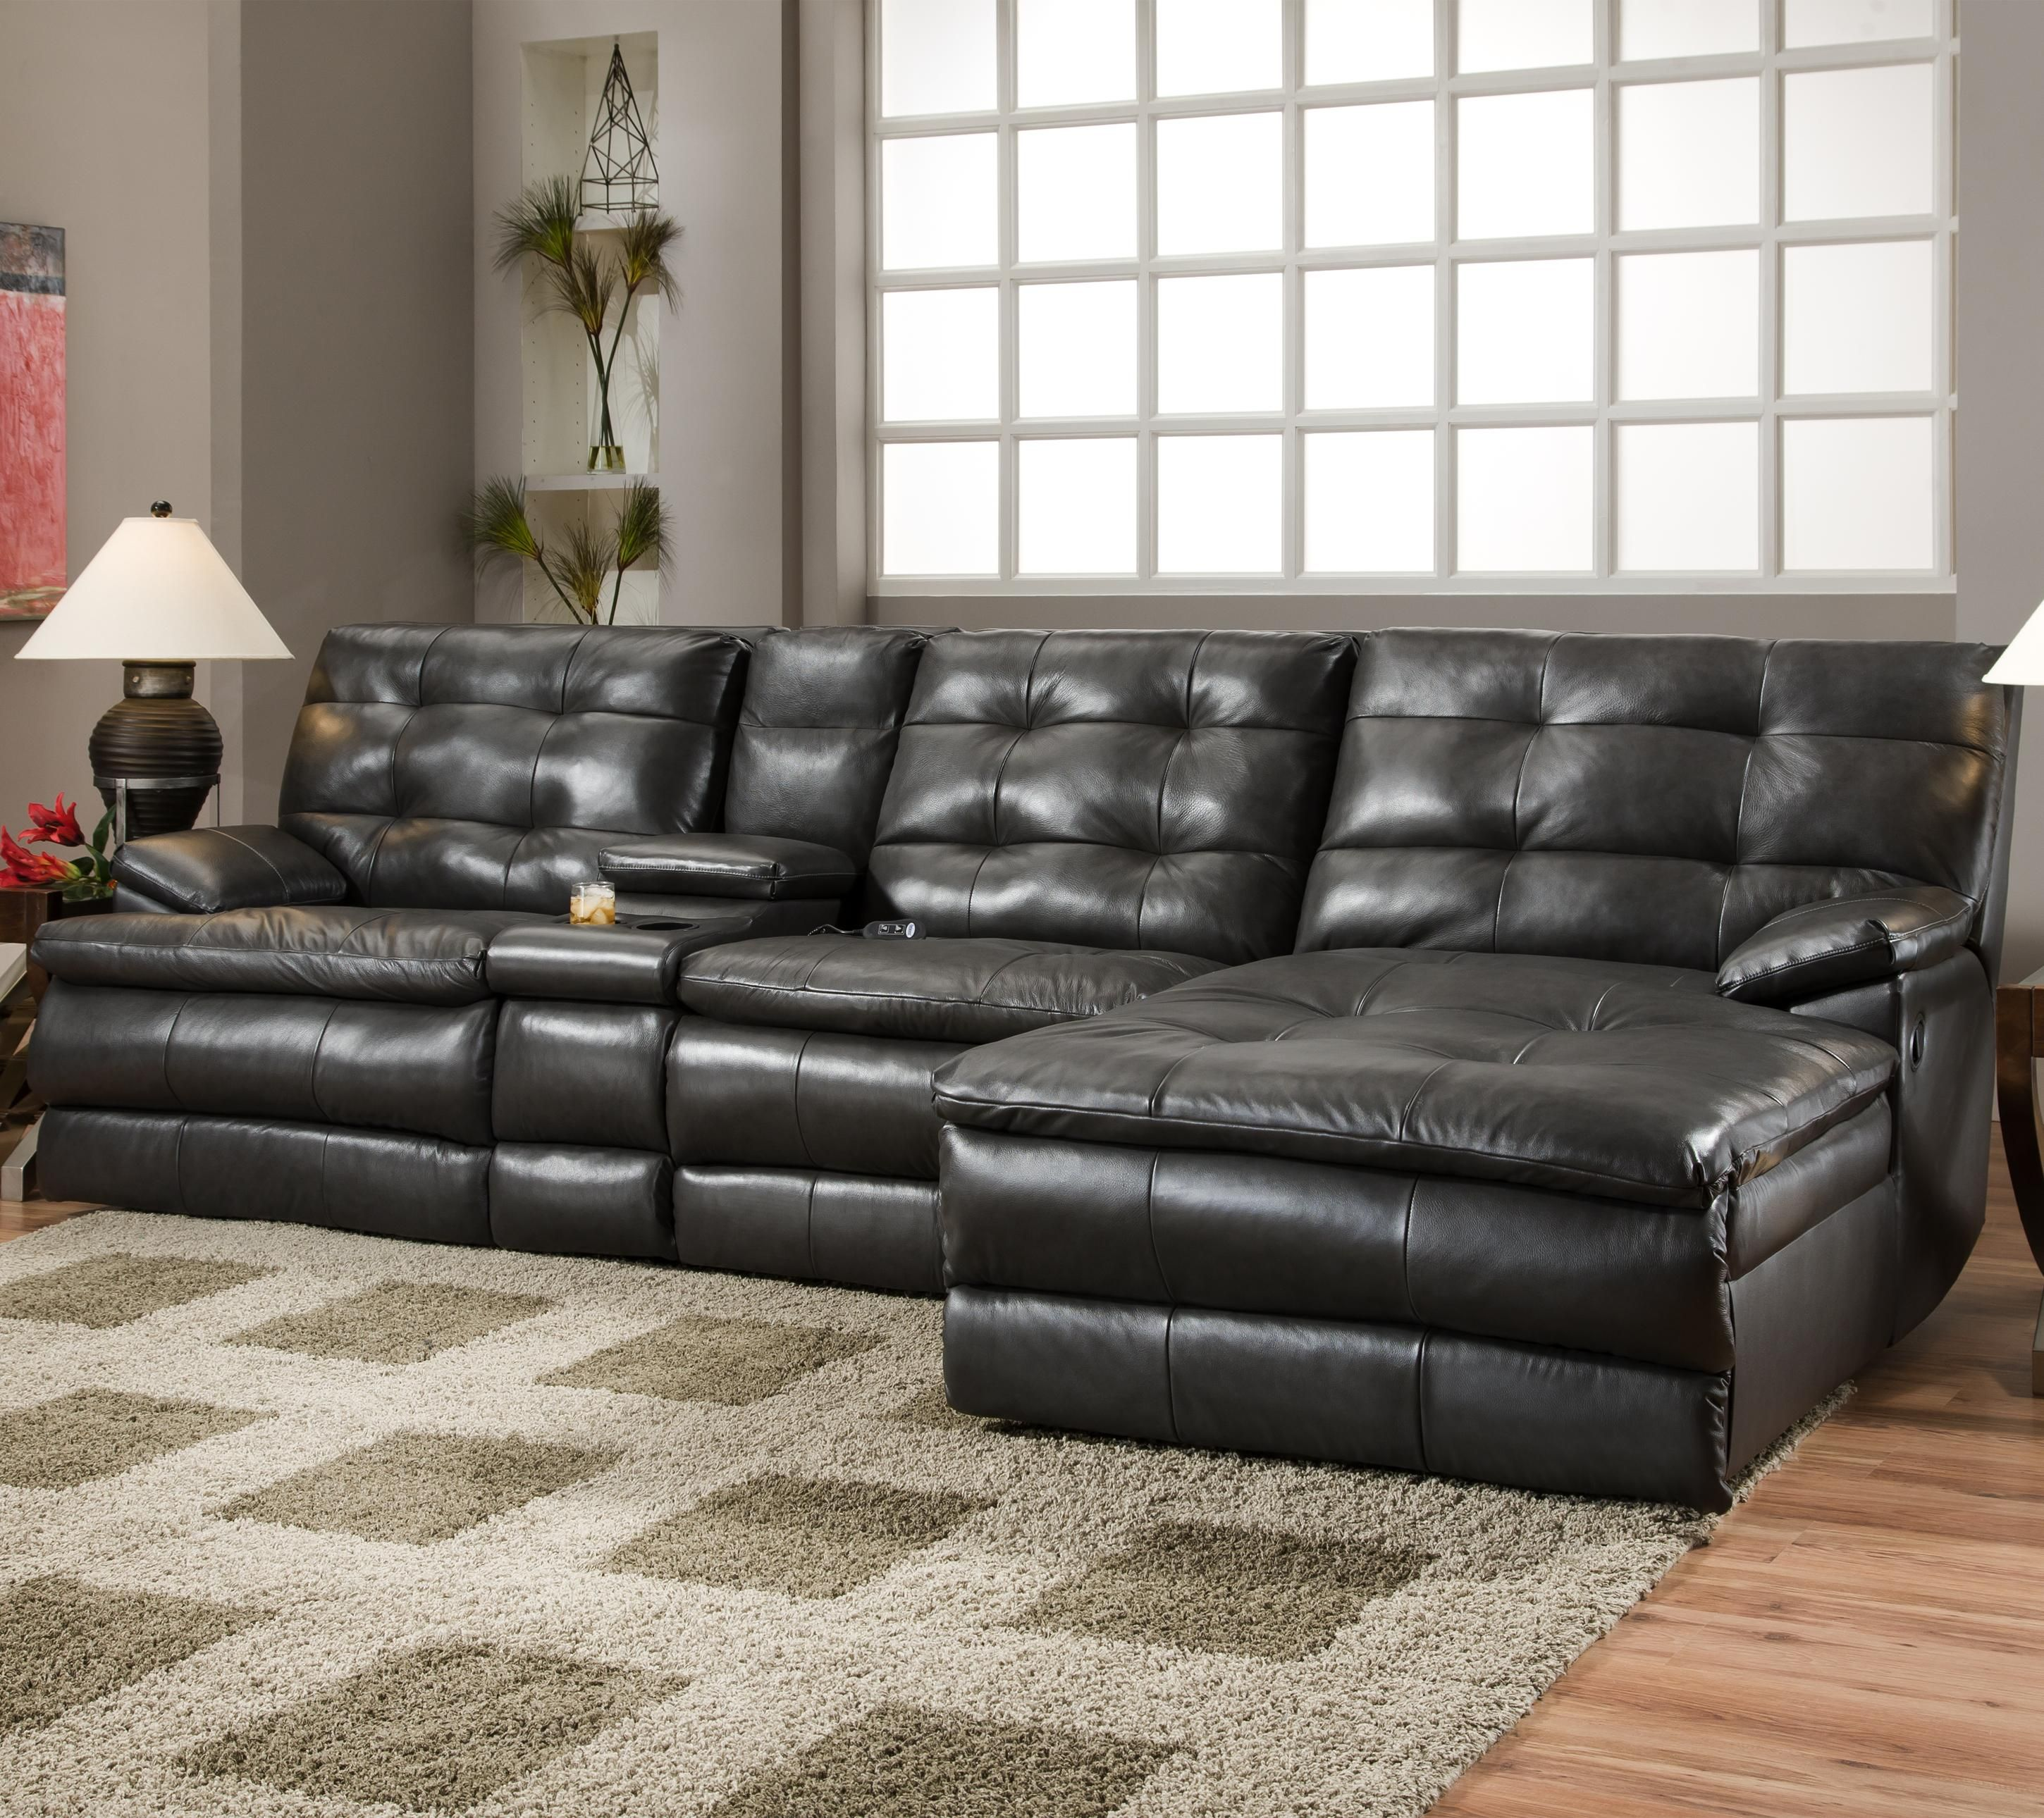 fortscapes Reclining Sectional Sofa by Southern Motion